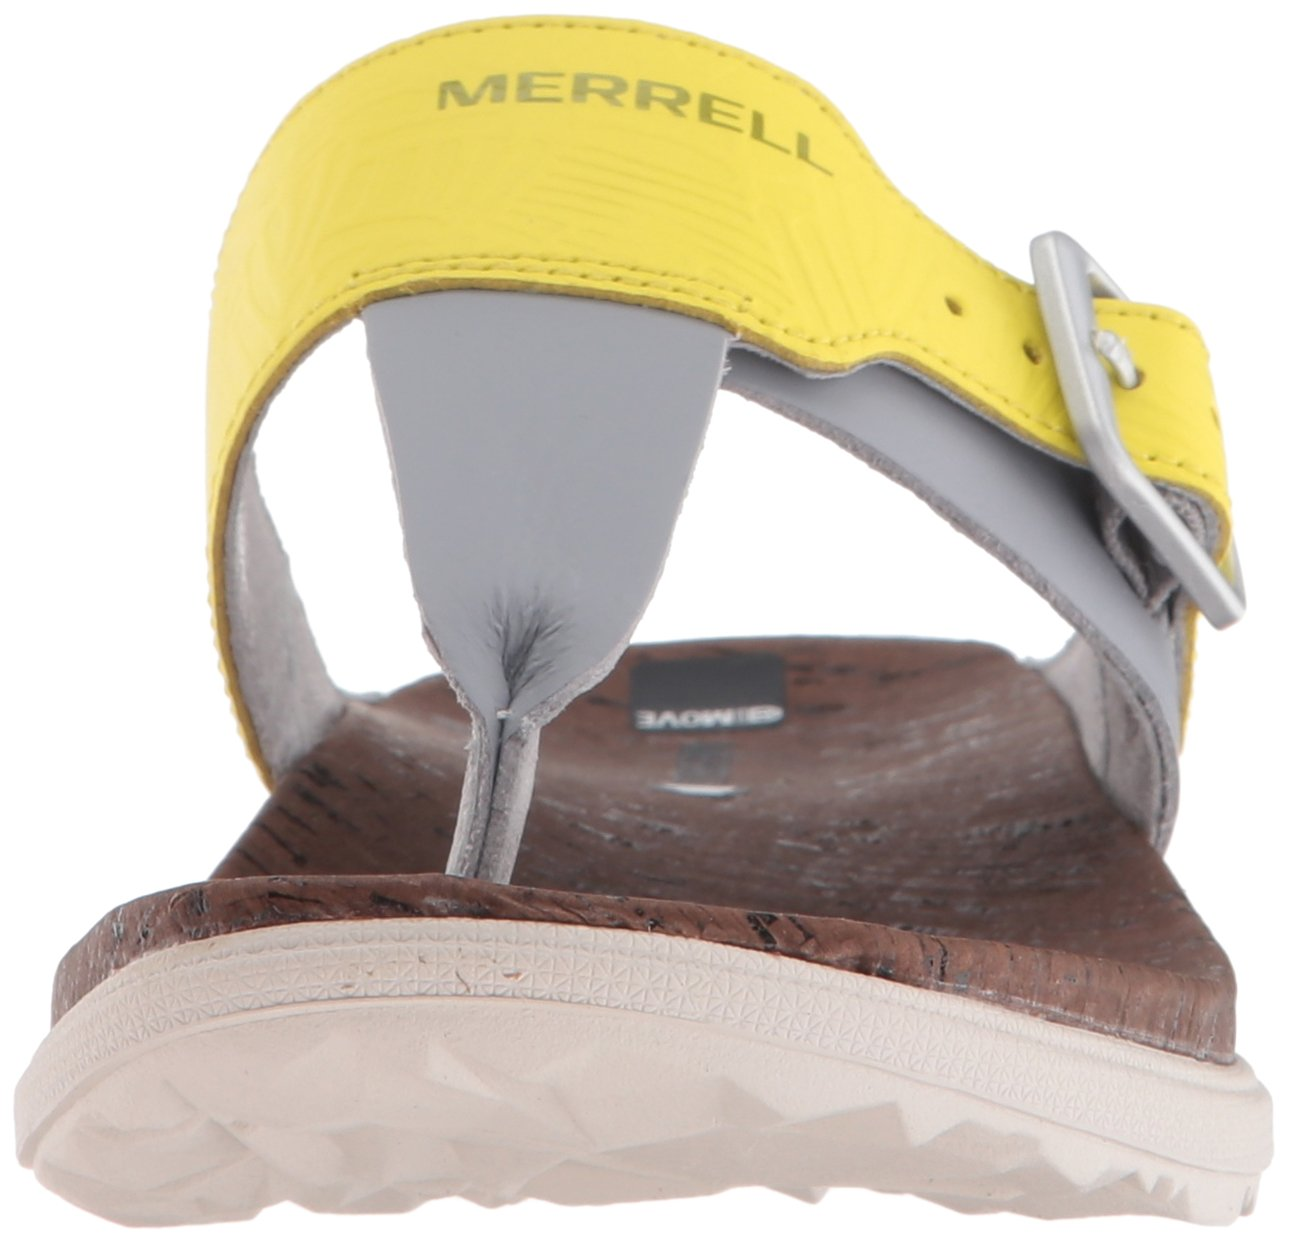 Merrell Women's Around Town Post Print Athletic Sandal B01HIZUXO2 8 B(M) US|Sleet